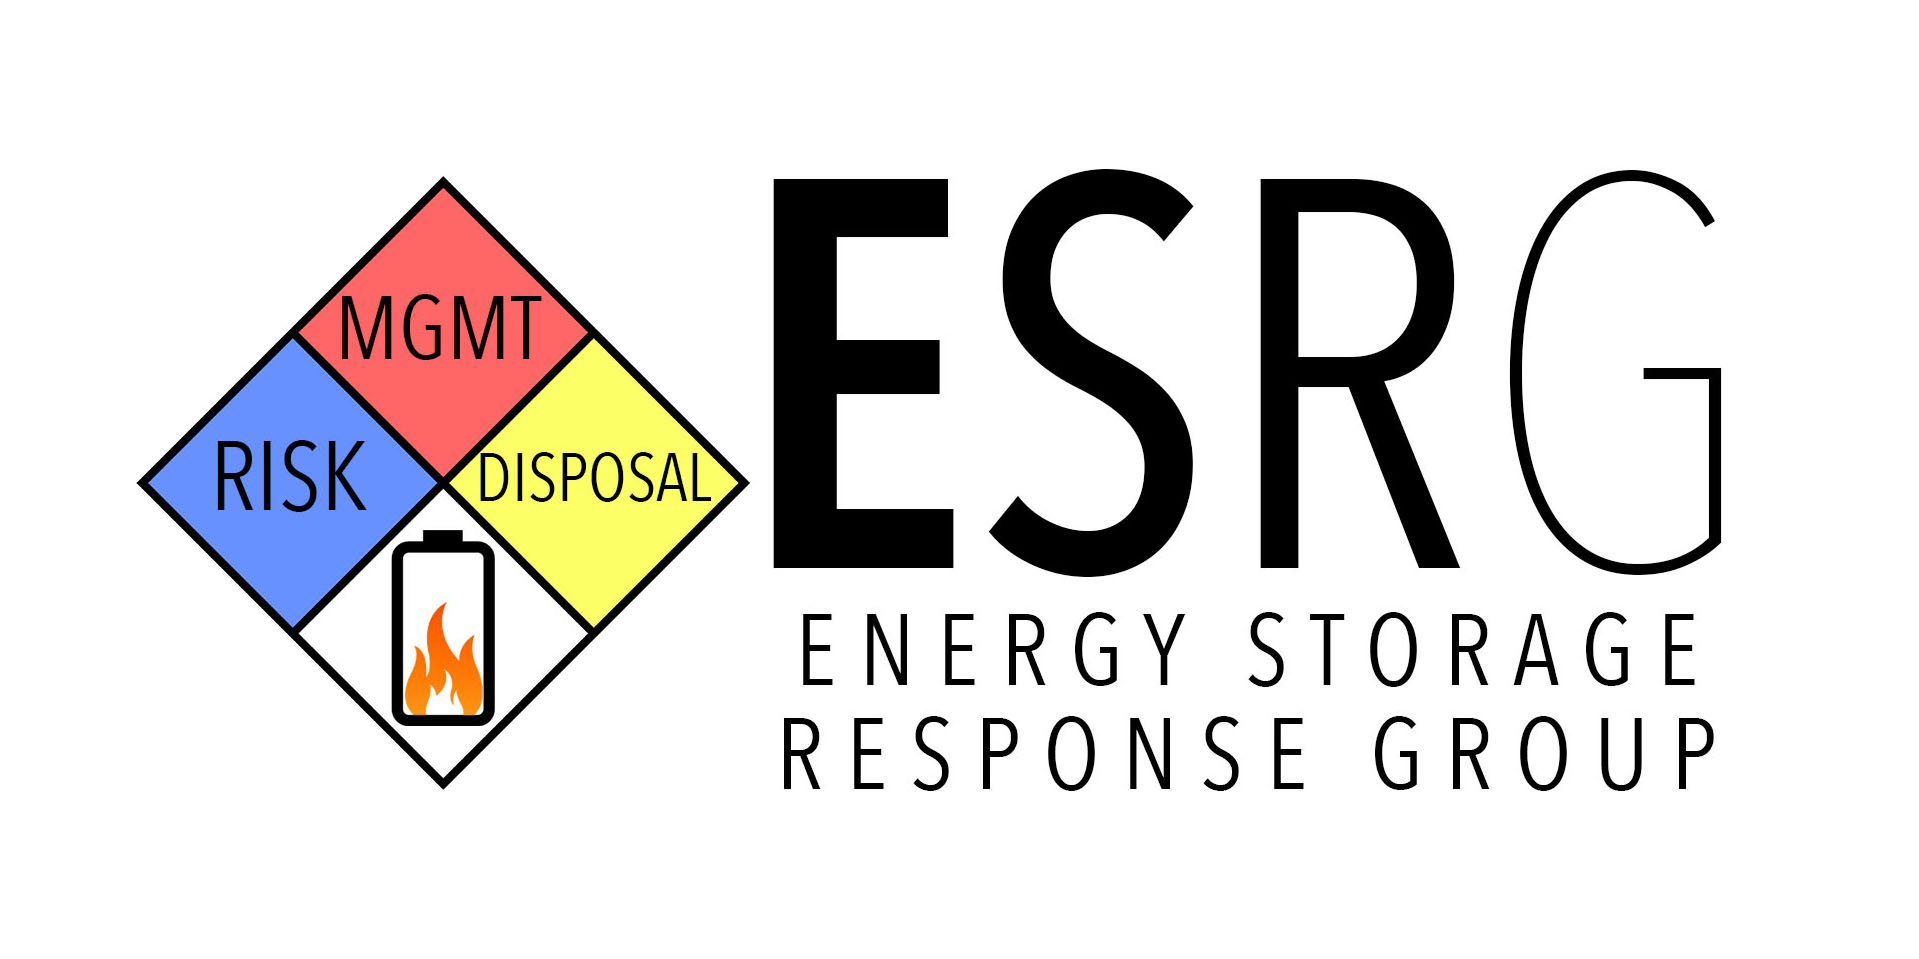 Energy Storage Response Group